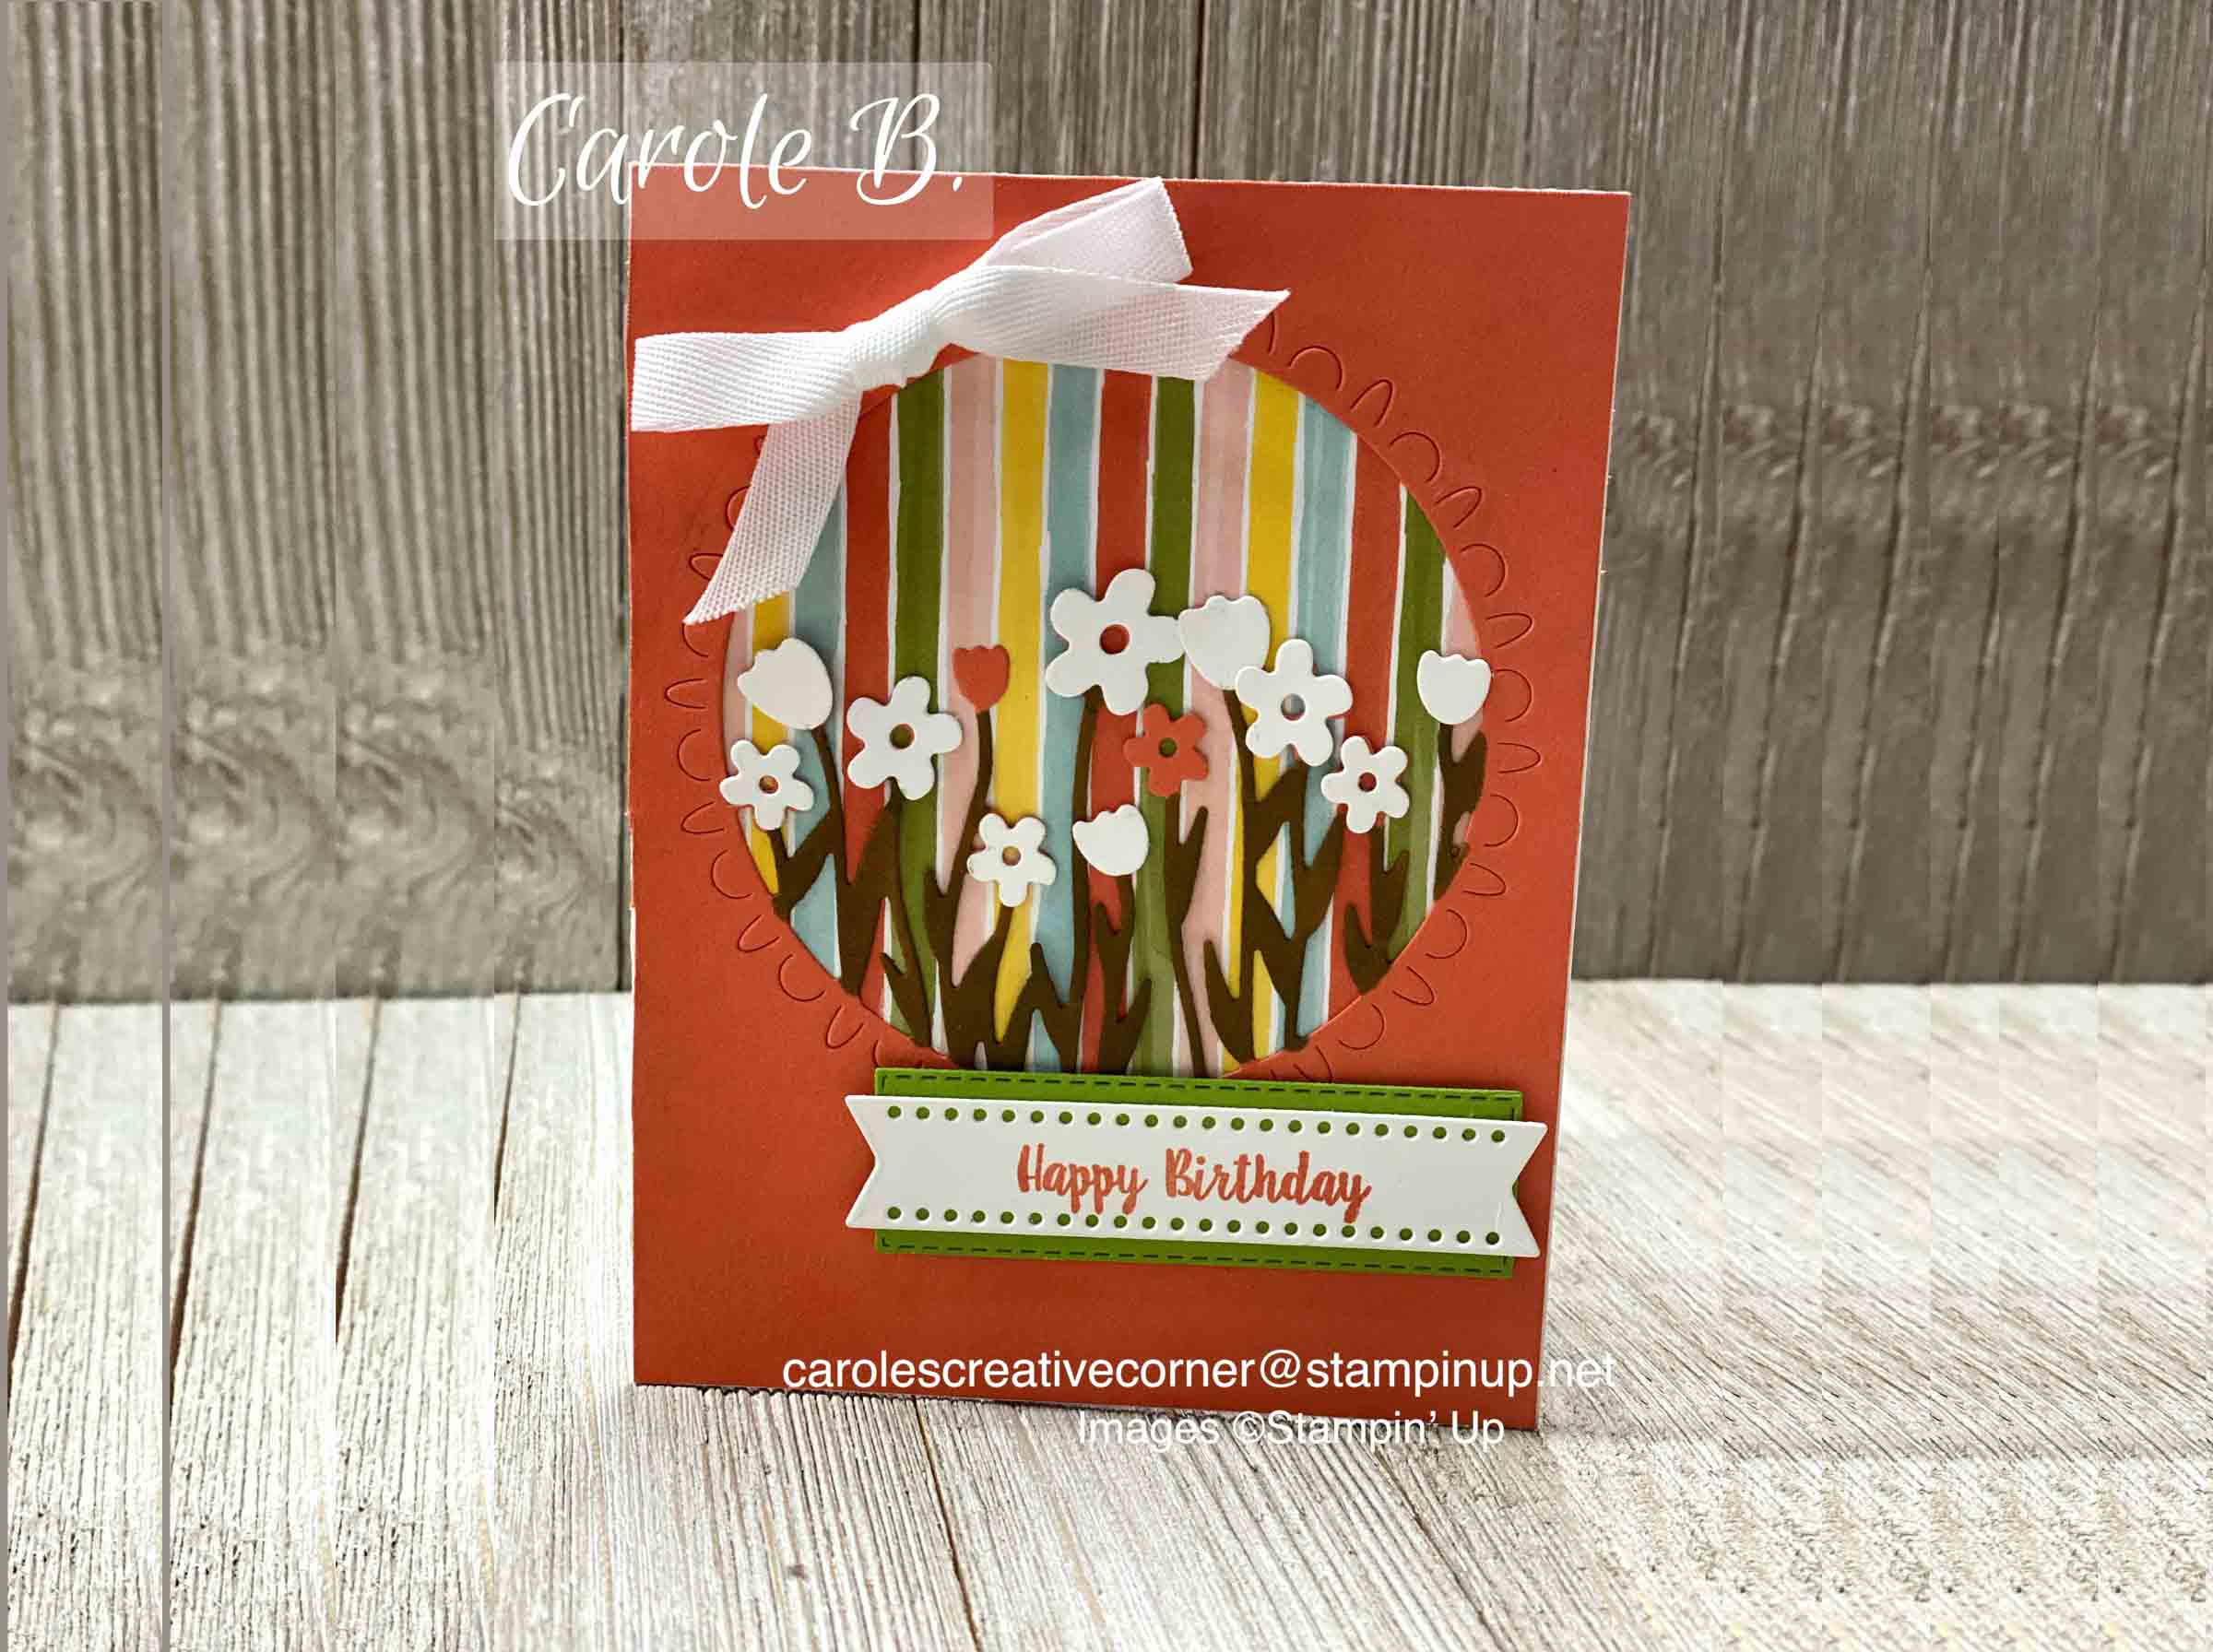 Stampin Up Sending Flowers: Tunnel Pop Out Card